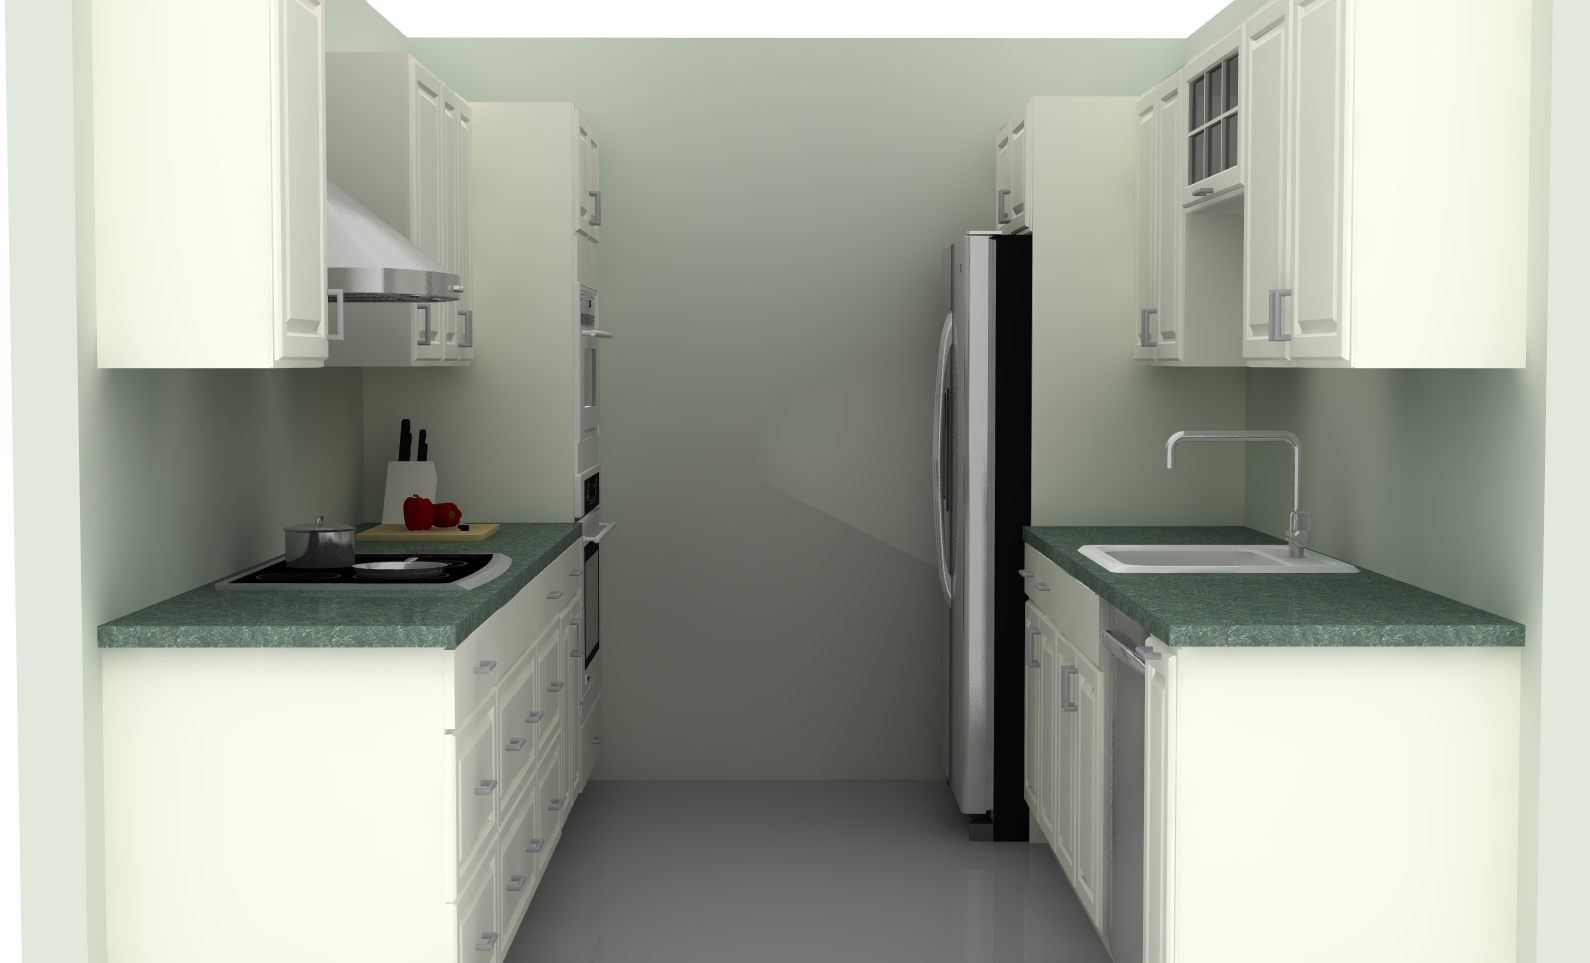 Ikea kitchen layouts pros and cons of a galley kitchen - Small kitchens ikea ...